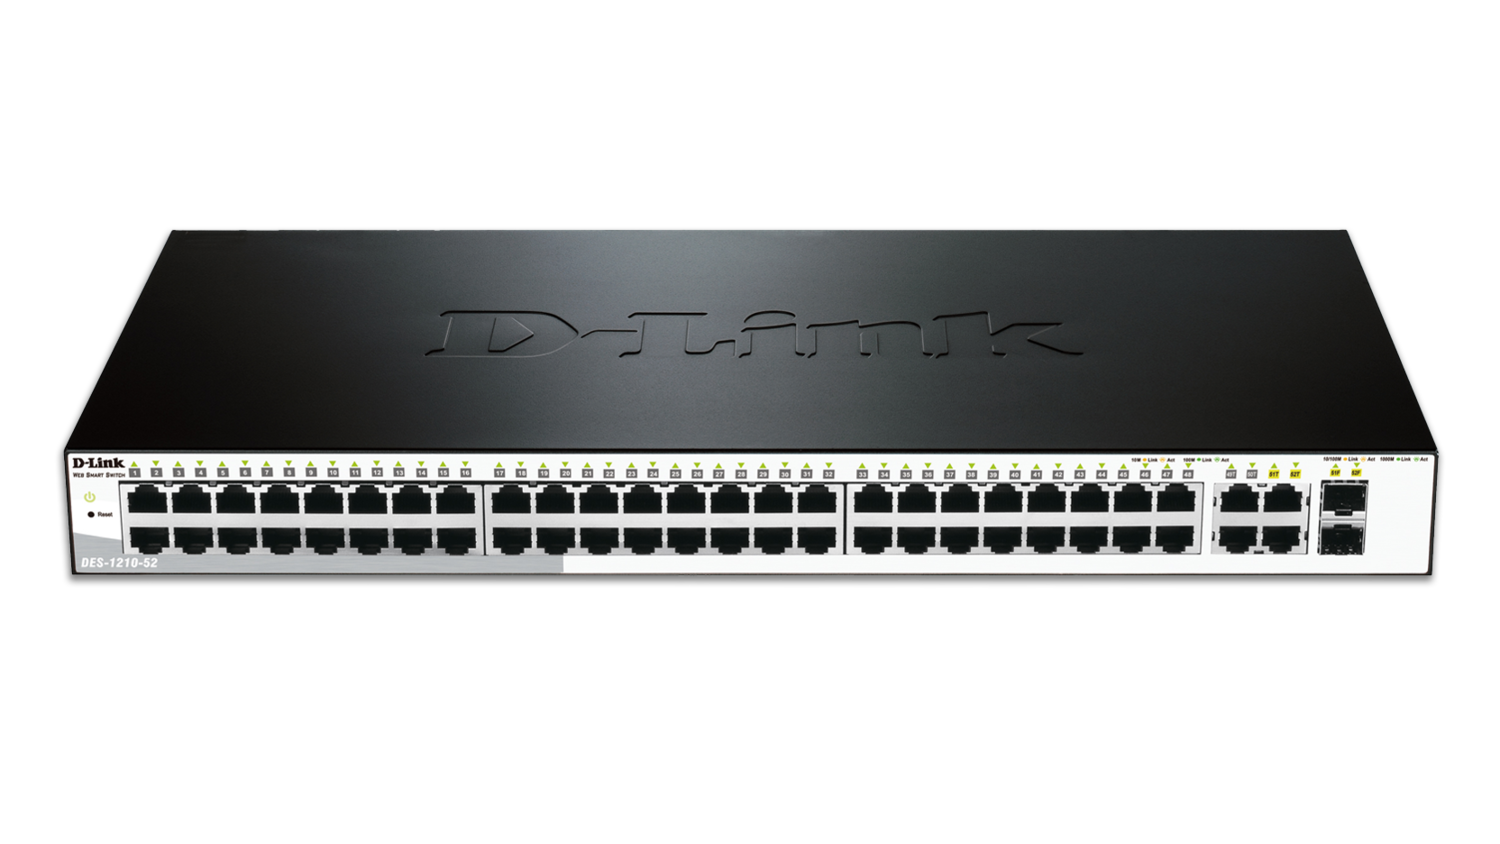 D-Link 48-Port 10/100/1000Mbps Smart Switch, DGS-1210-52